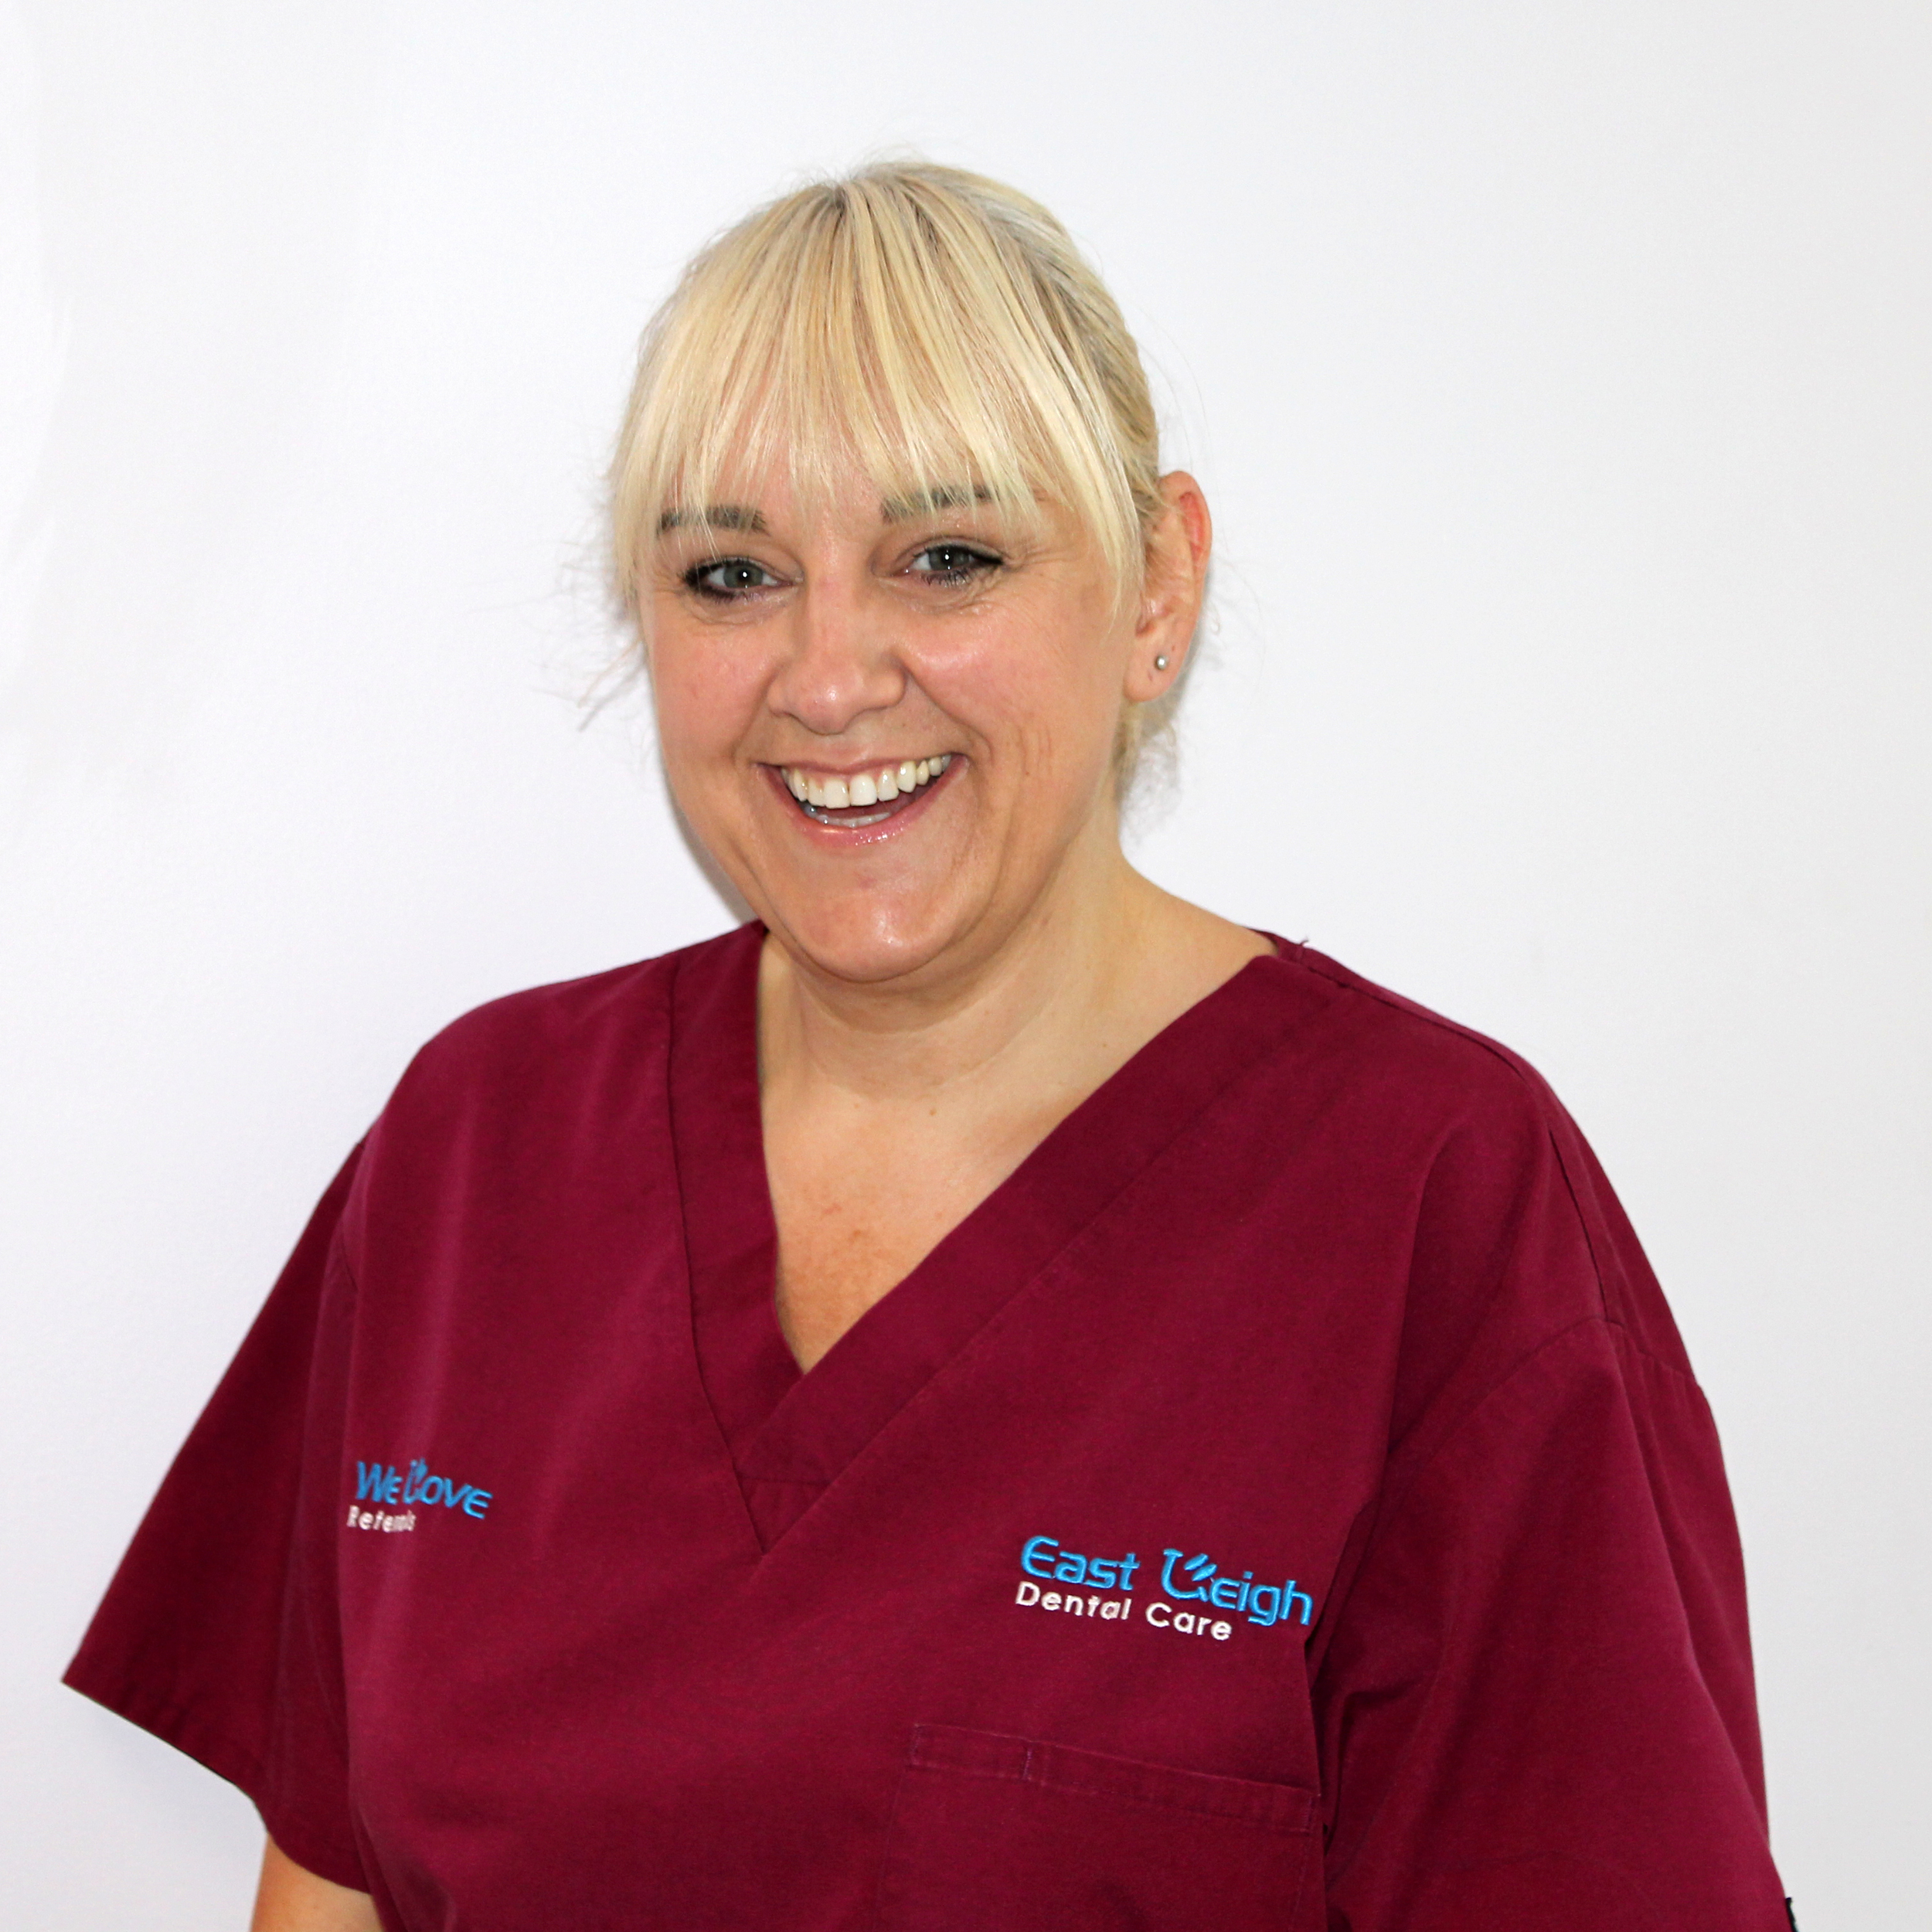 Hazel-hygienist-east-leigh-dental-care